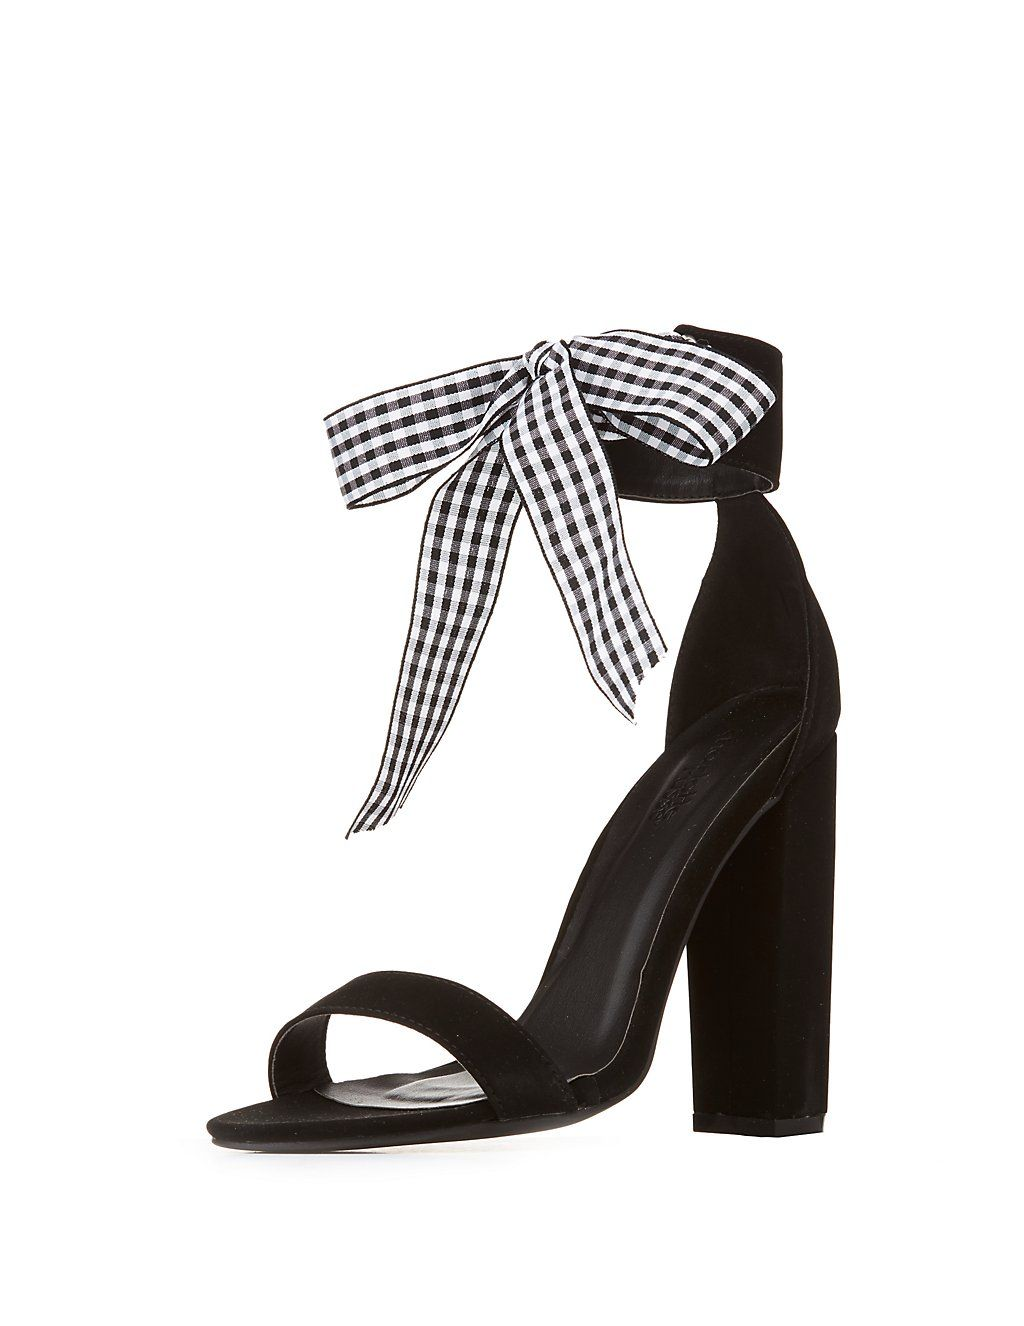 71a147faab8a6 Online only! Faux suede gives these marvelous ankle strap sandals for a  show-stopping